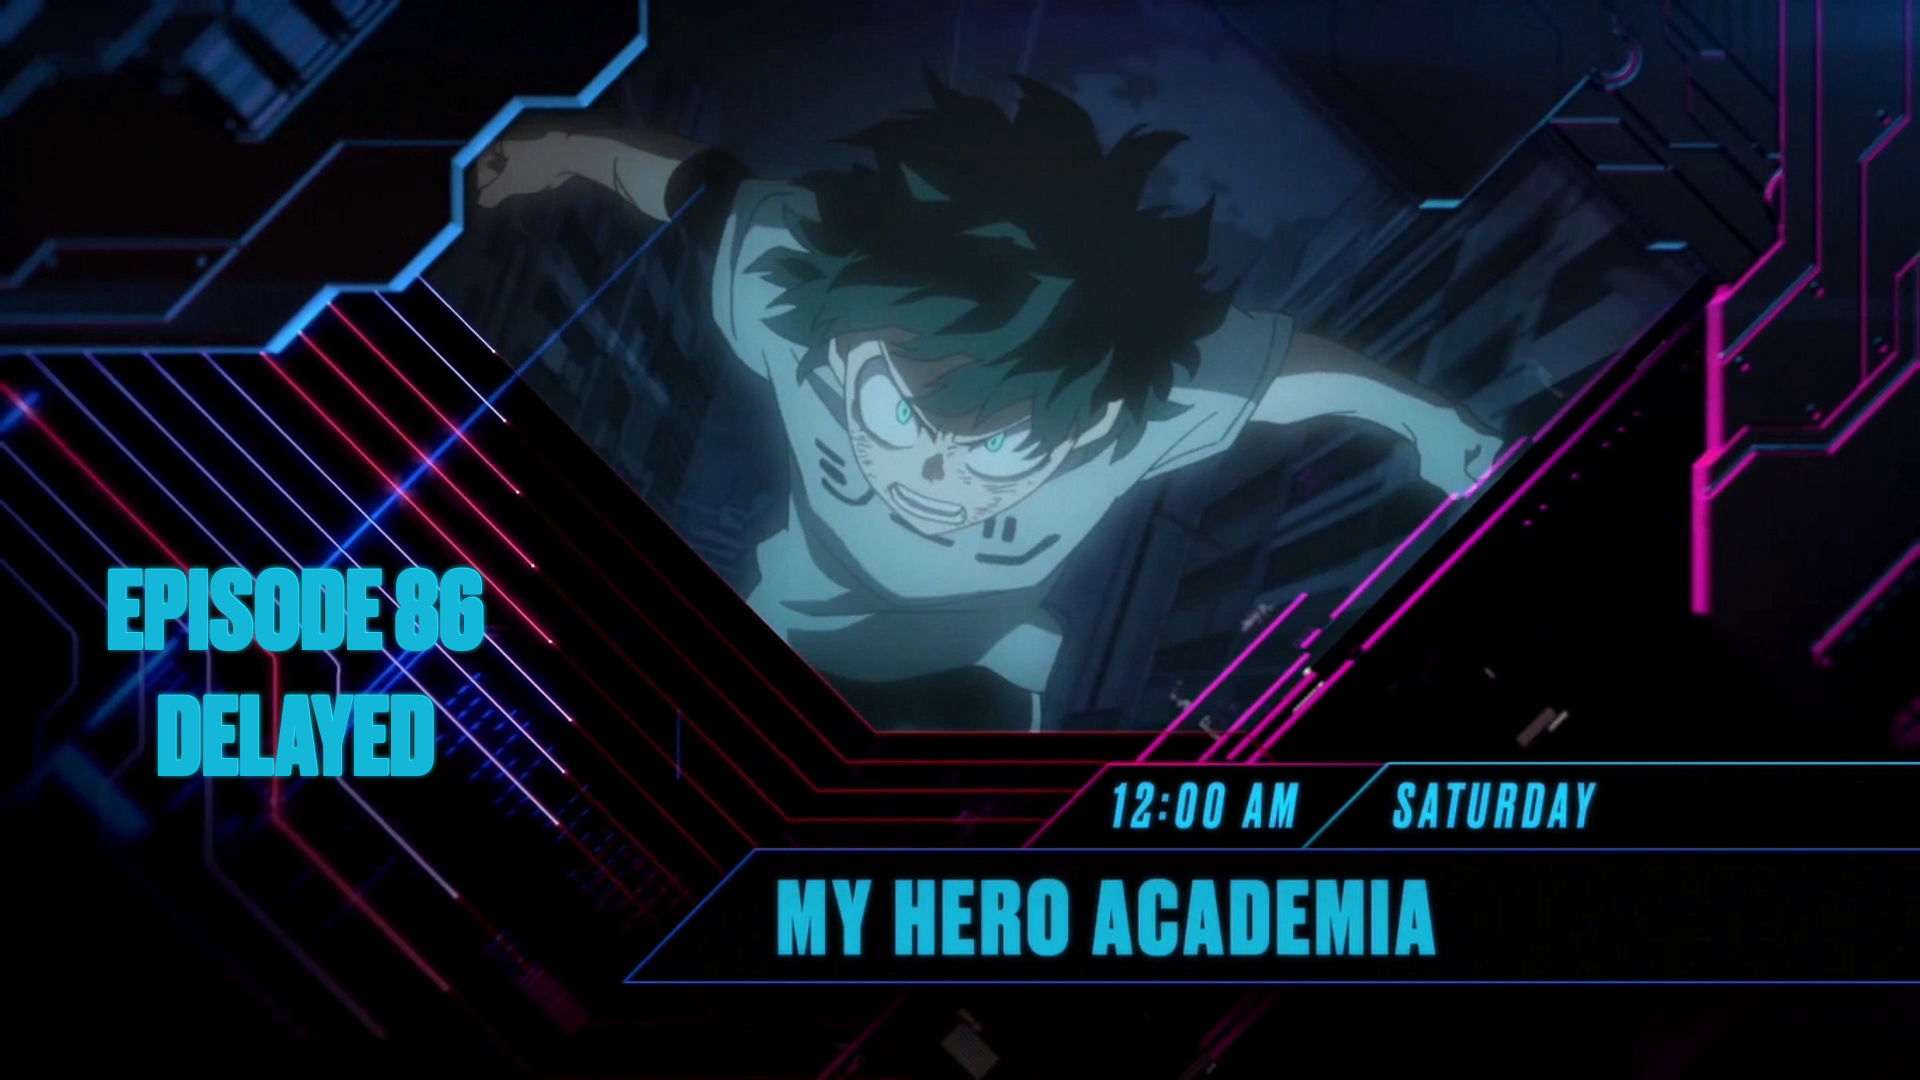 FUNimation SimulDub Production Delays Due to COVID-19 Pandemic Cause Broadcast Delay for My Hero Academia on Toonami